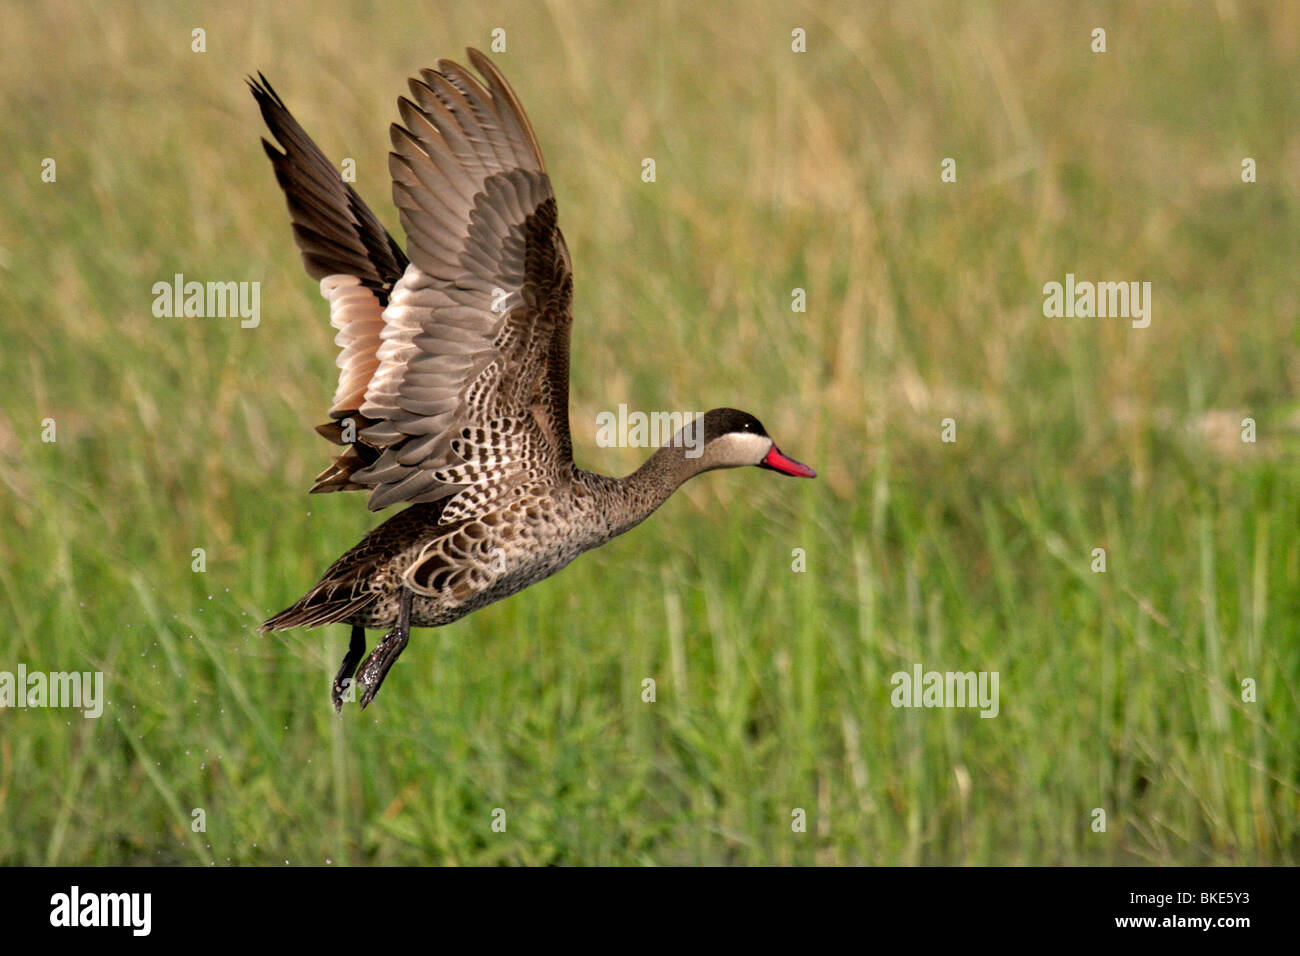 Red-billed teale in flight - Stock Image